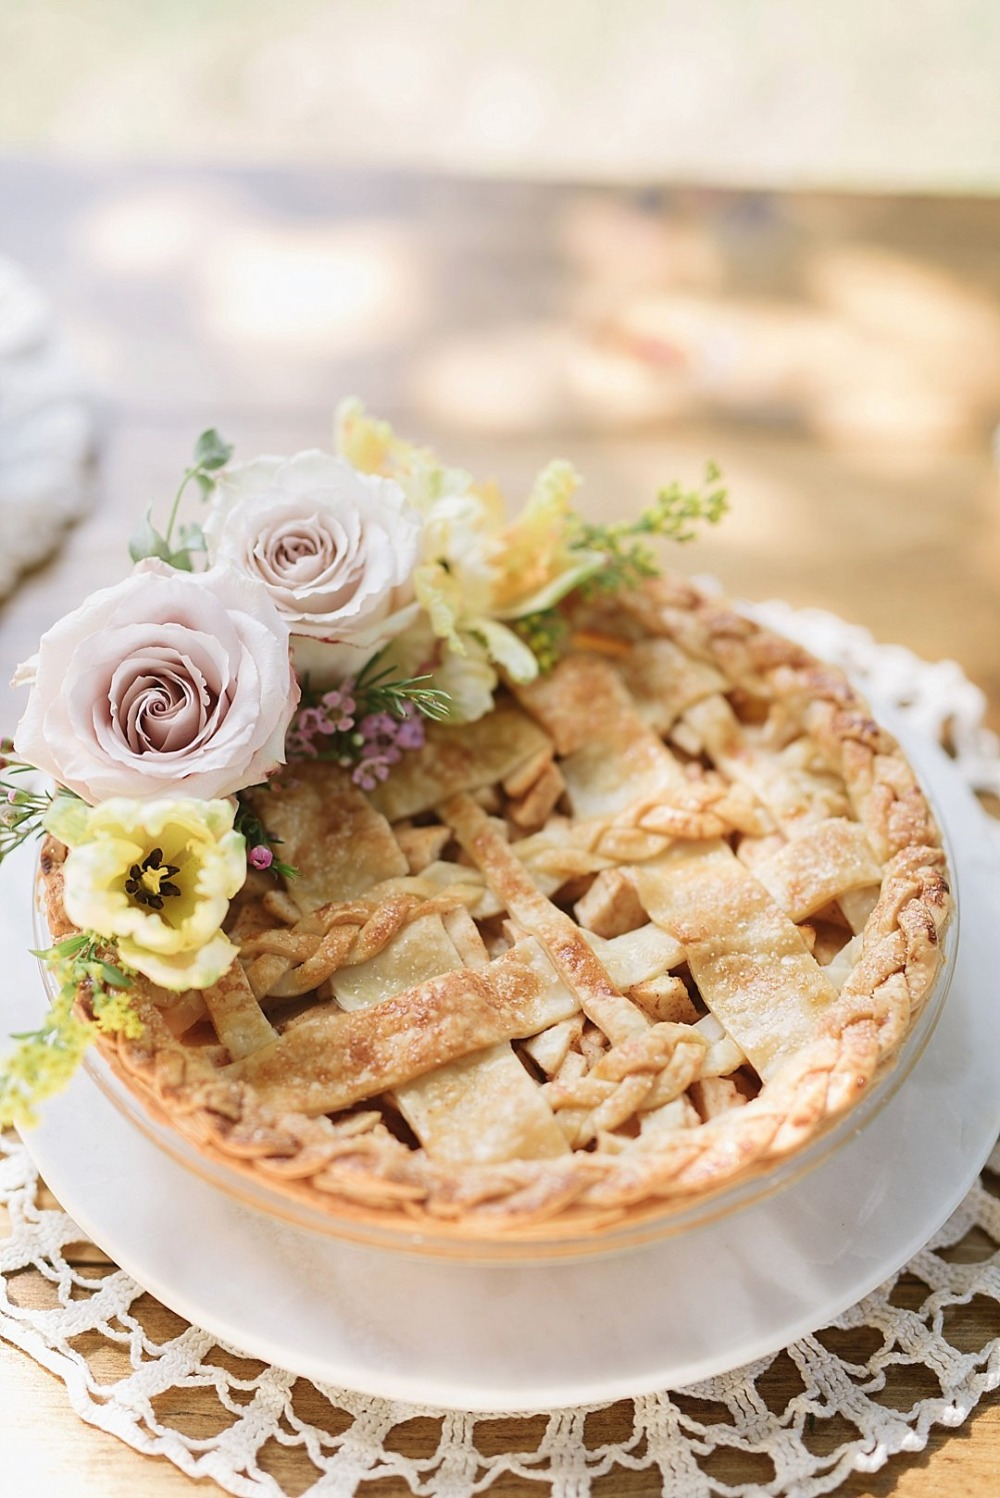 Gorgeous pie with floral details